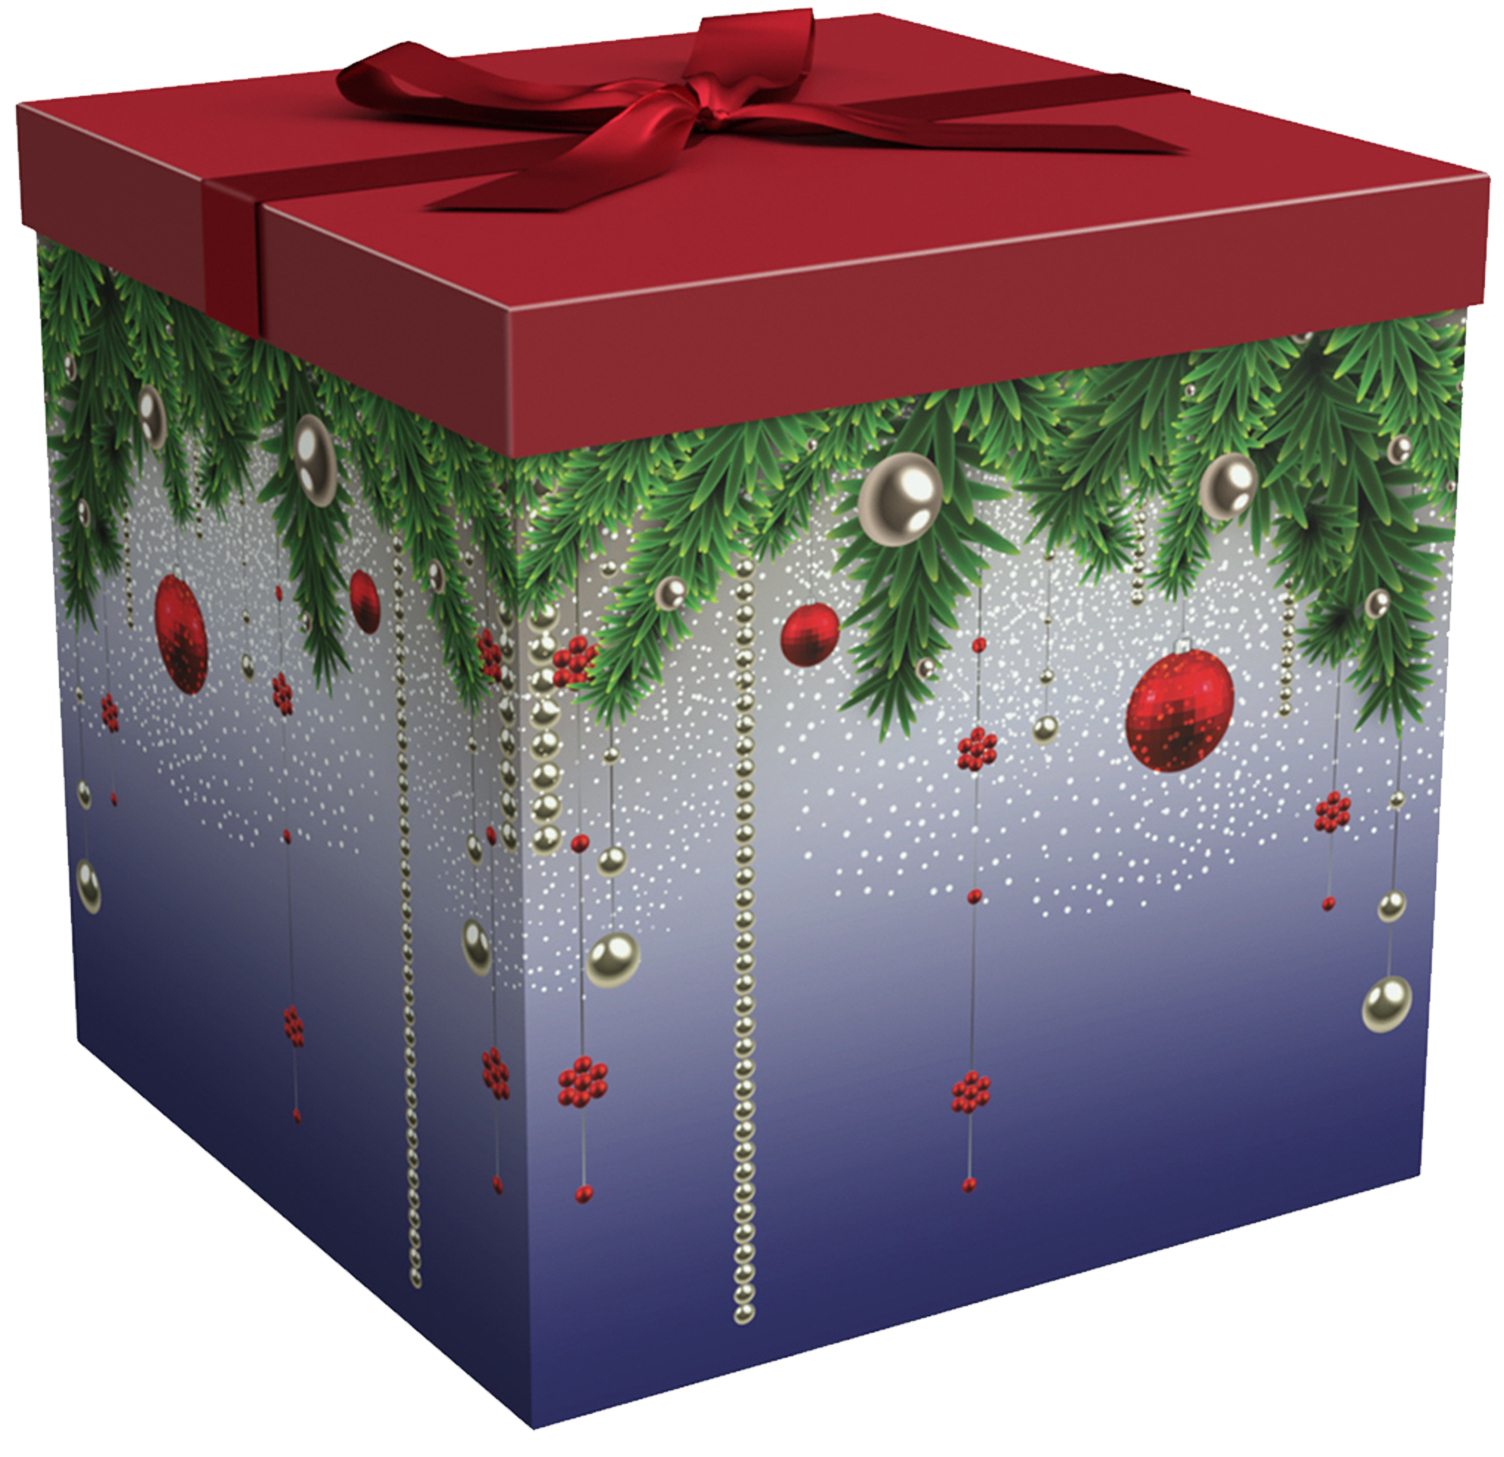 Gift Box 12x12x12 Silent Night Collection - Easy to Assemble & Reusable - No Glue Required - Ribbon, Tissue Paper, and Gift Tag Included - EZ Gift Box by Endless Art US